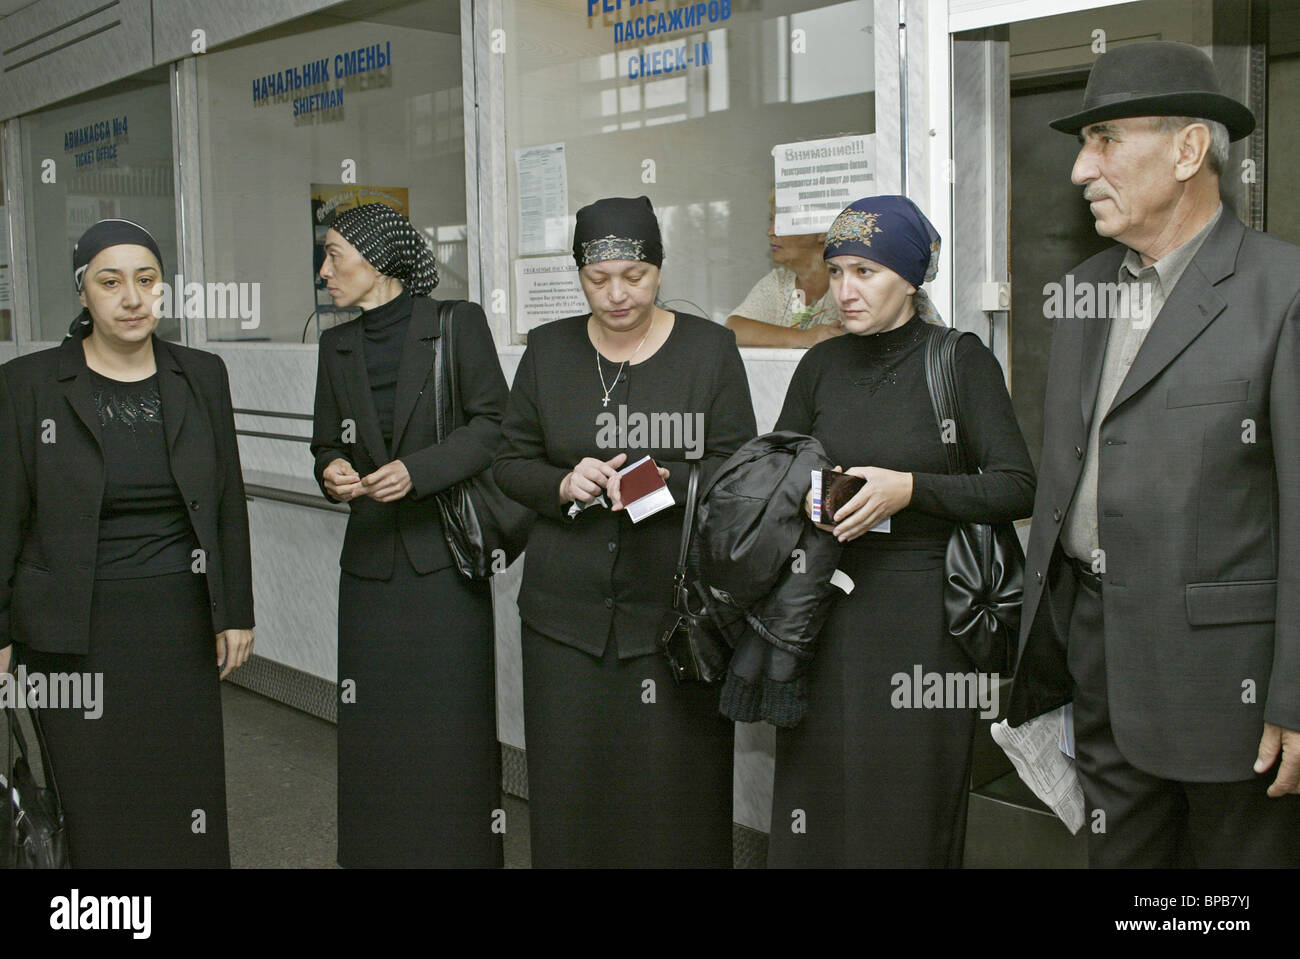 Relatives of Beslan victims set off for Moscow - Stock Image